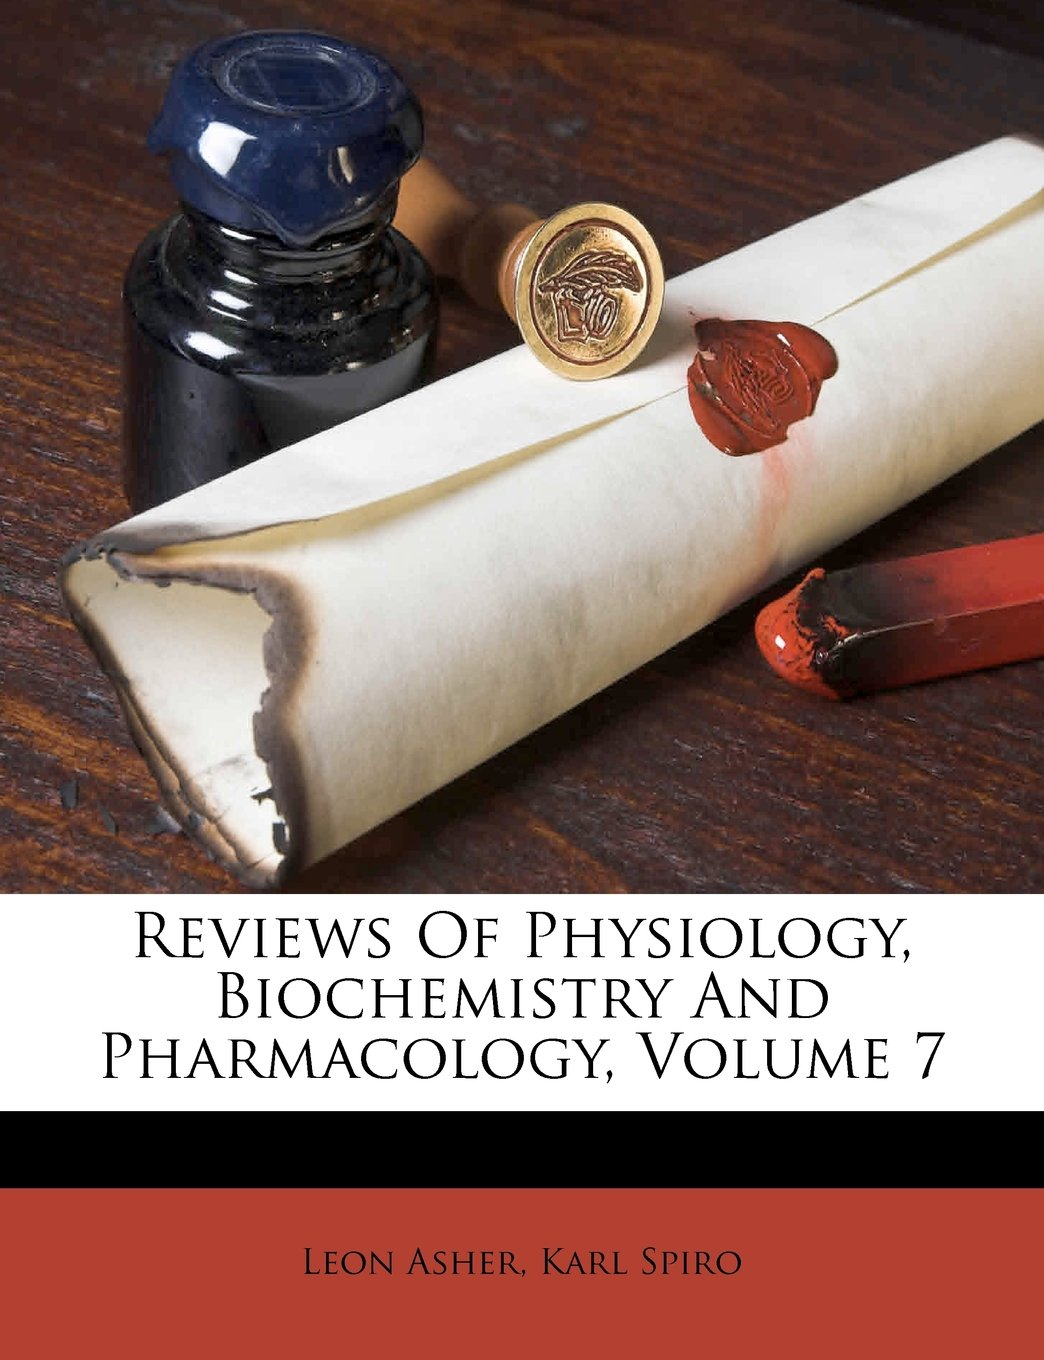 Download Reviews Of Physiology, Biochemistry And Pharmacology, Volume 7 (German Edition) pdf epub